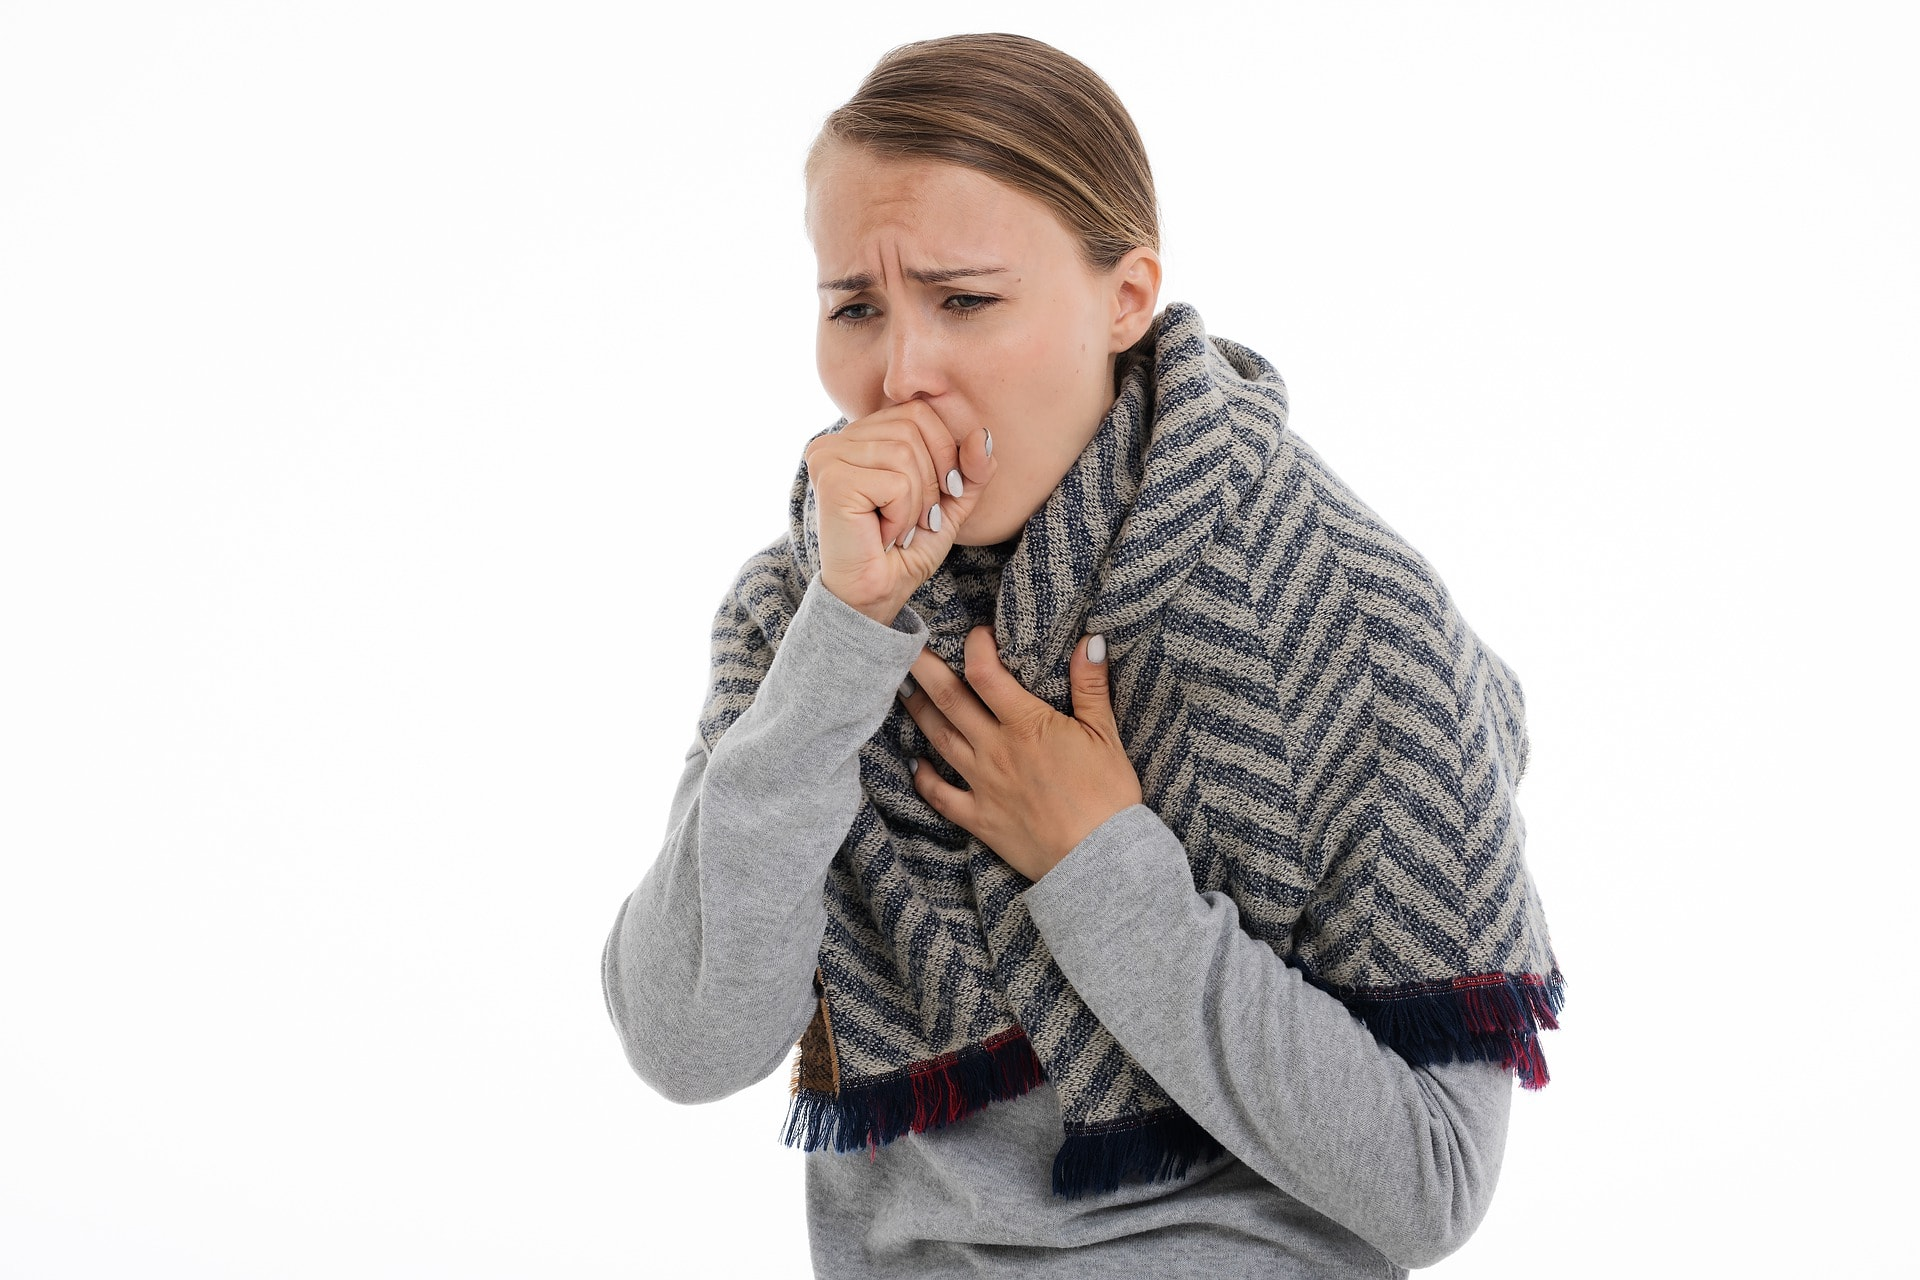 Dry Cough Best Home Remedies For Instant Relief - Organic Health Fact